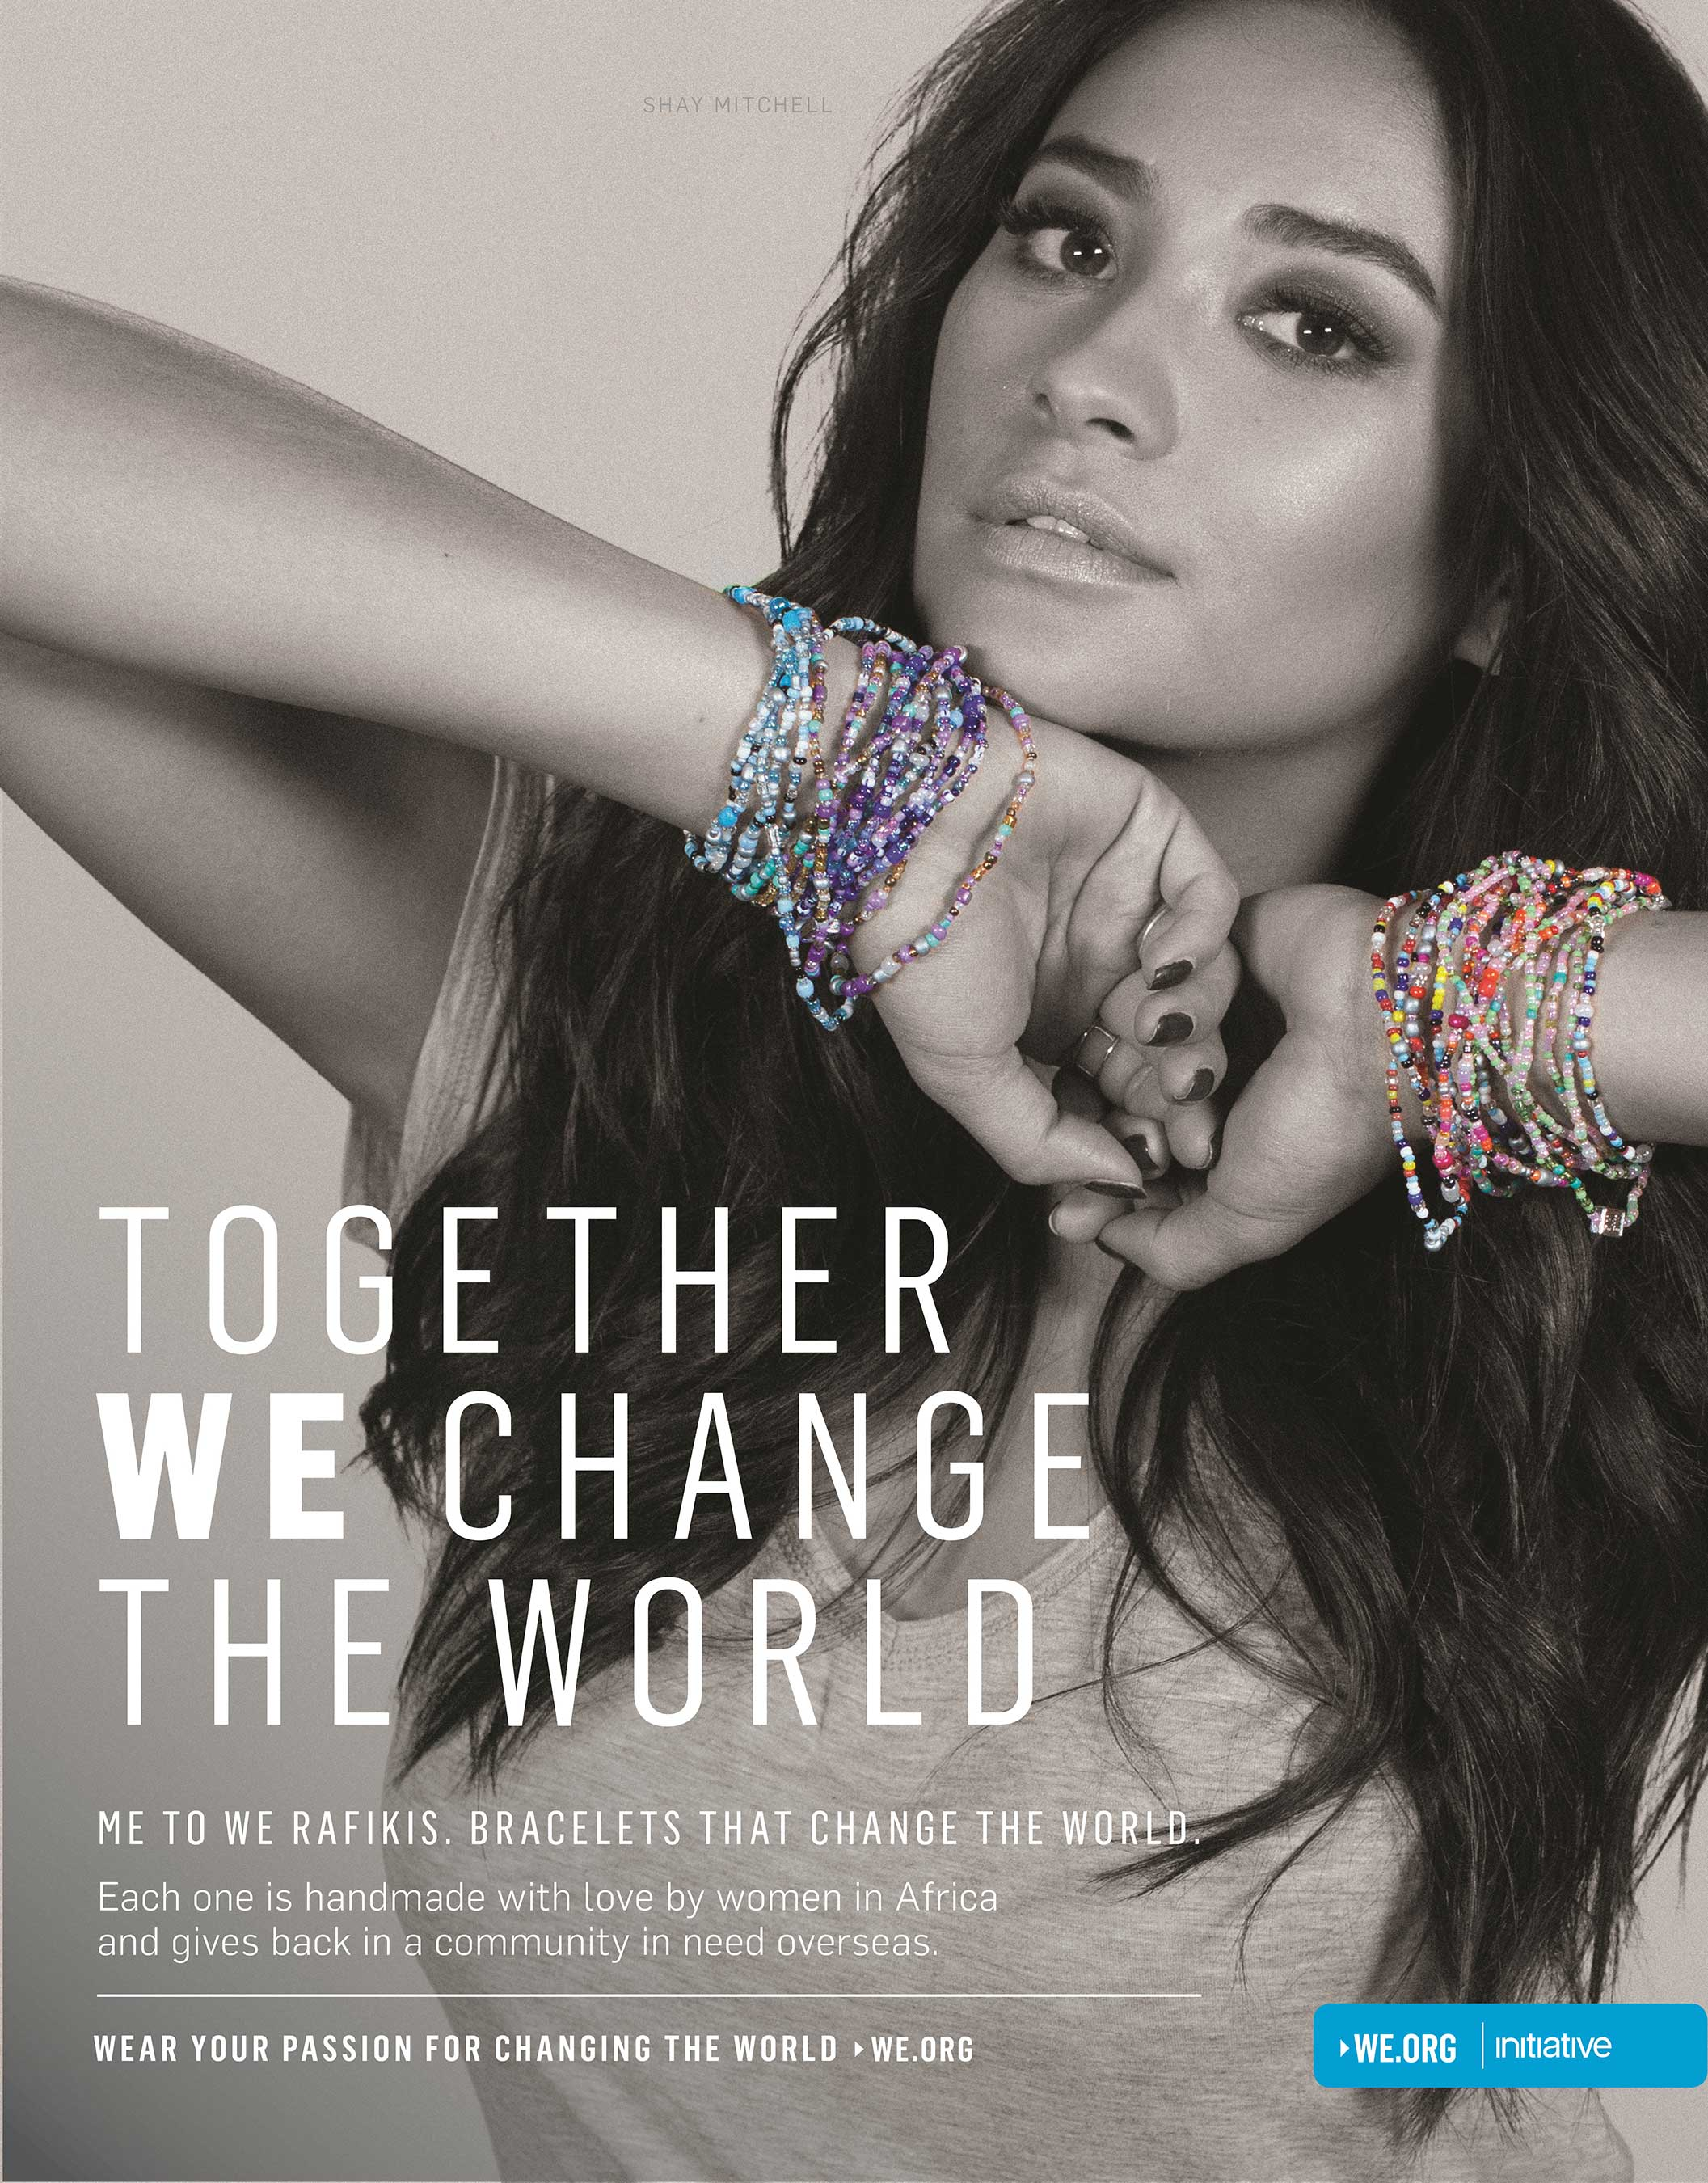 Shay Mitchell and Nina Dobrev wear their passion for changing the world